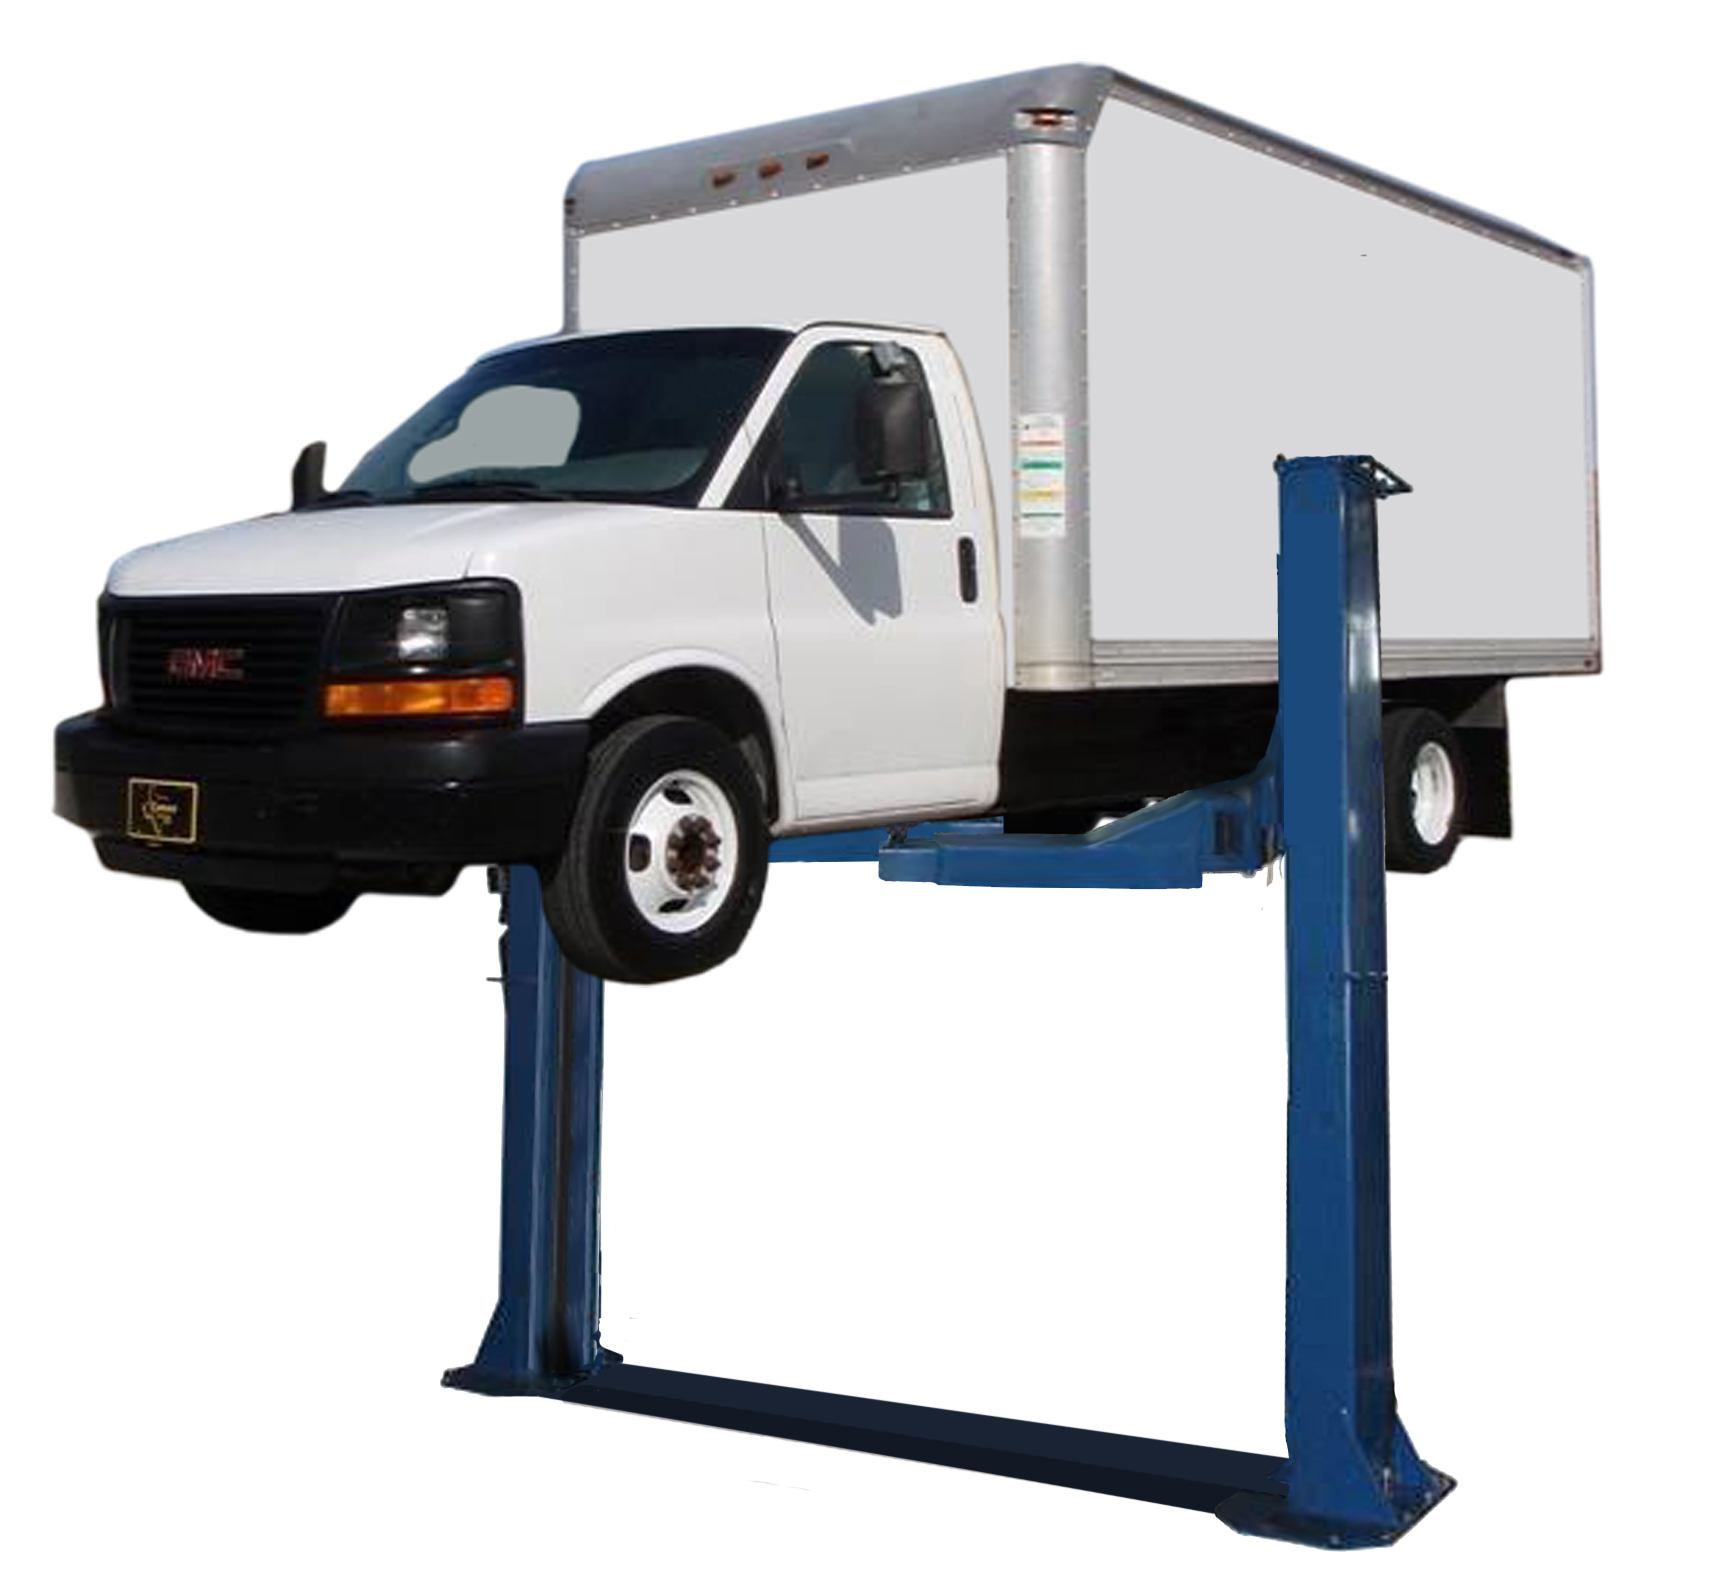 Automotive Car Lift : Post lifts pse oh overhead automotive car